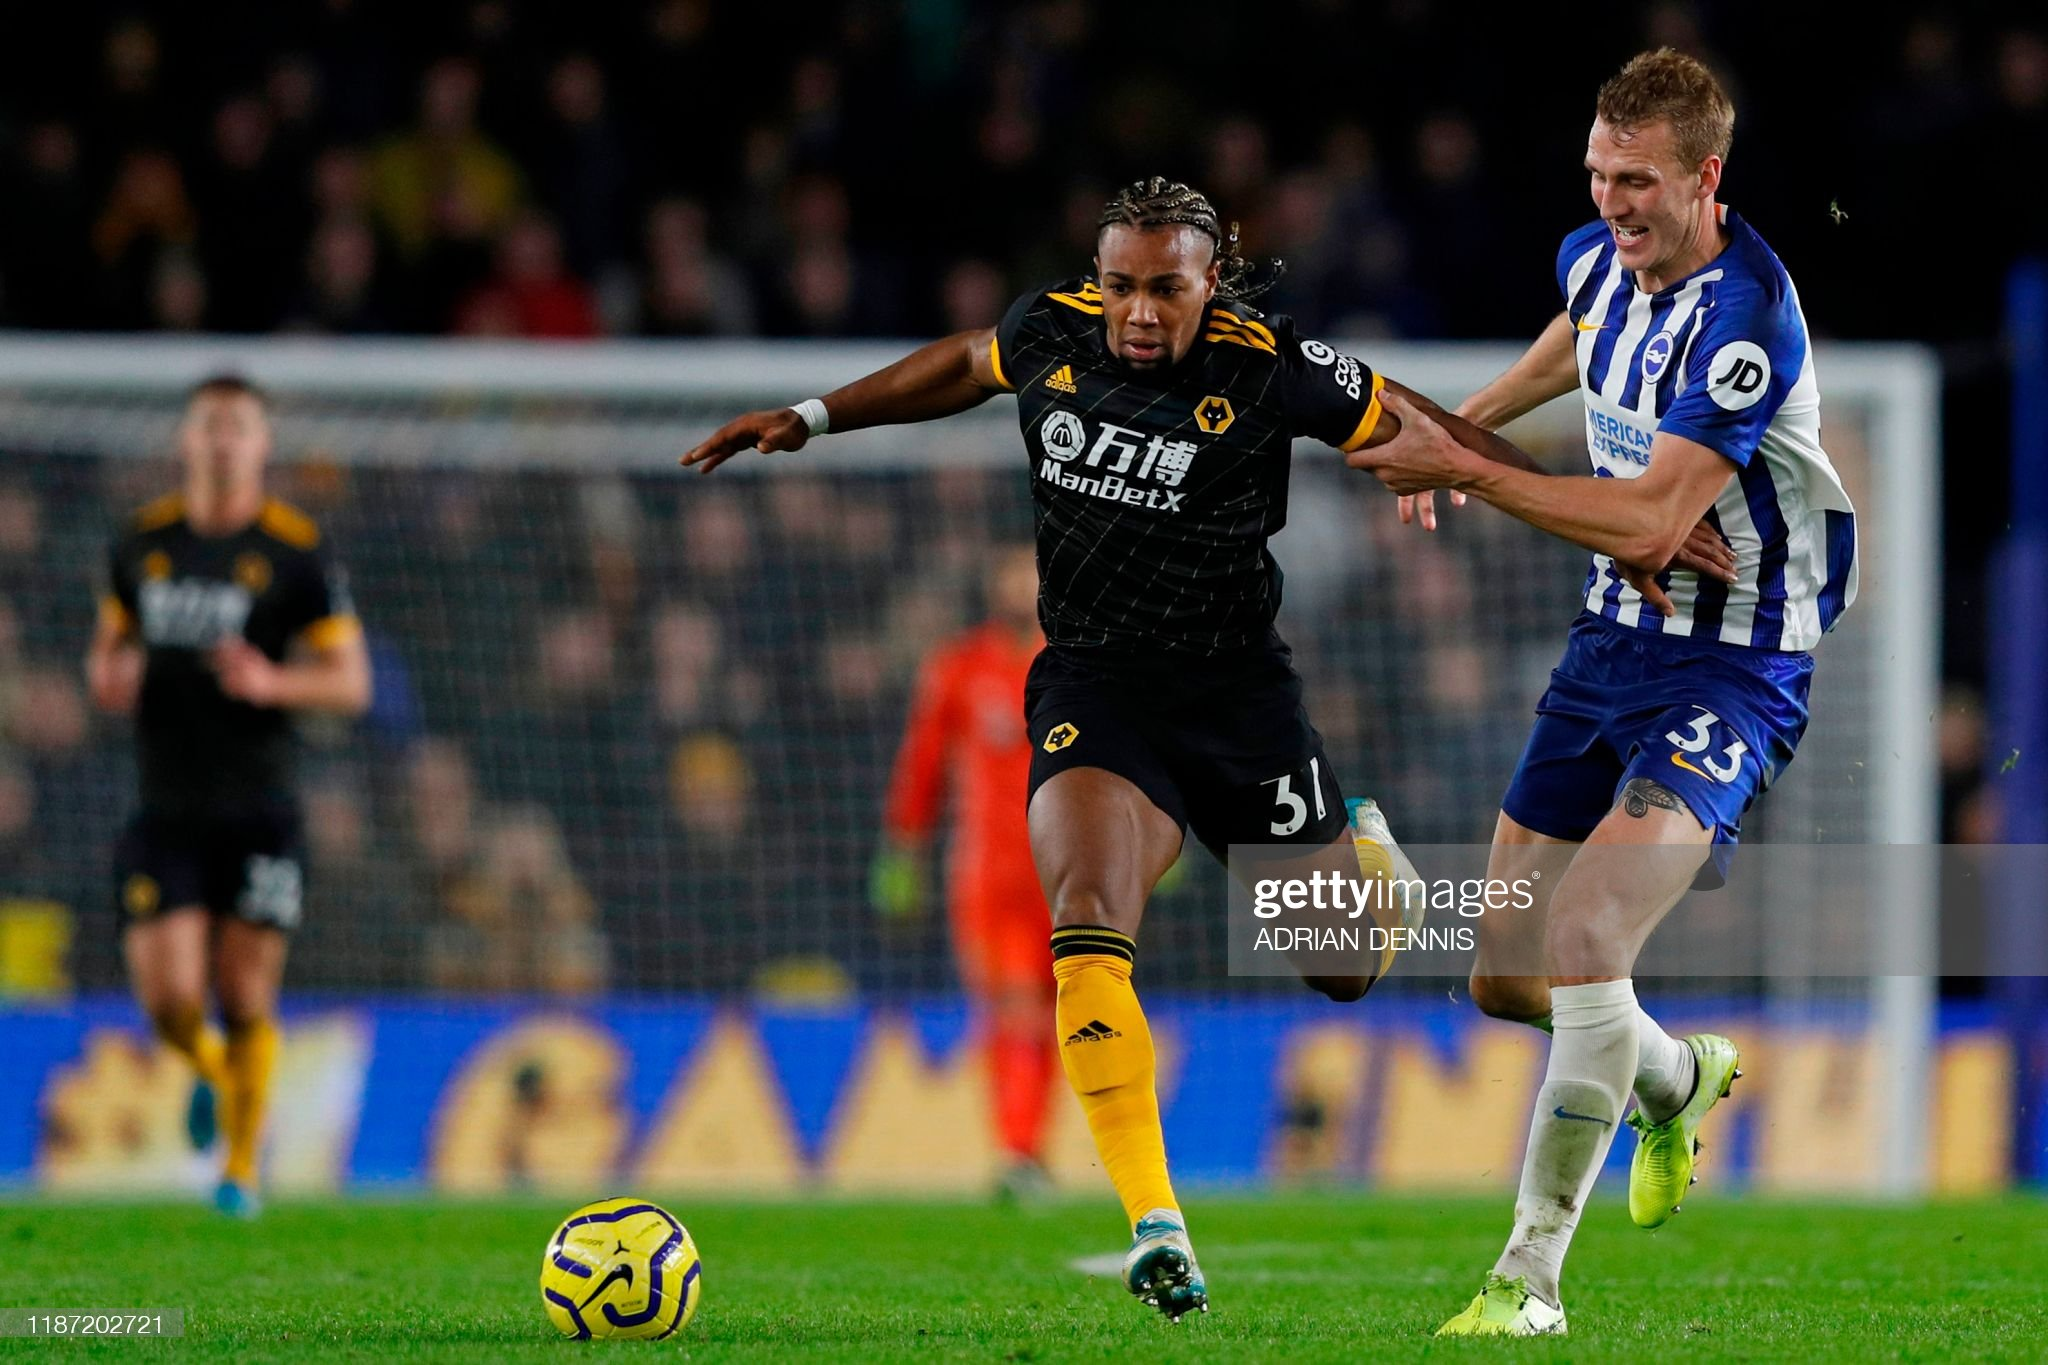 Brighton vs Wolves preview, prediction and odds